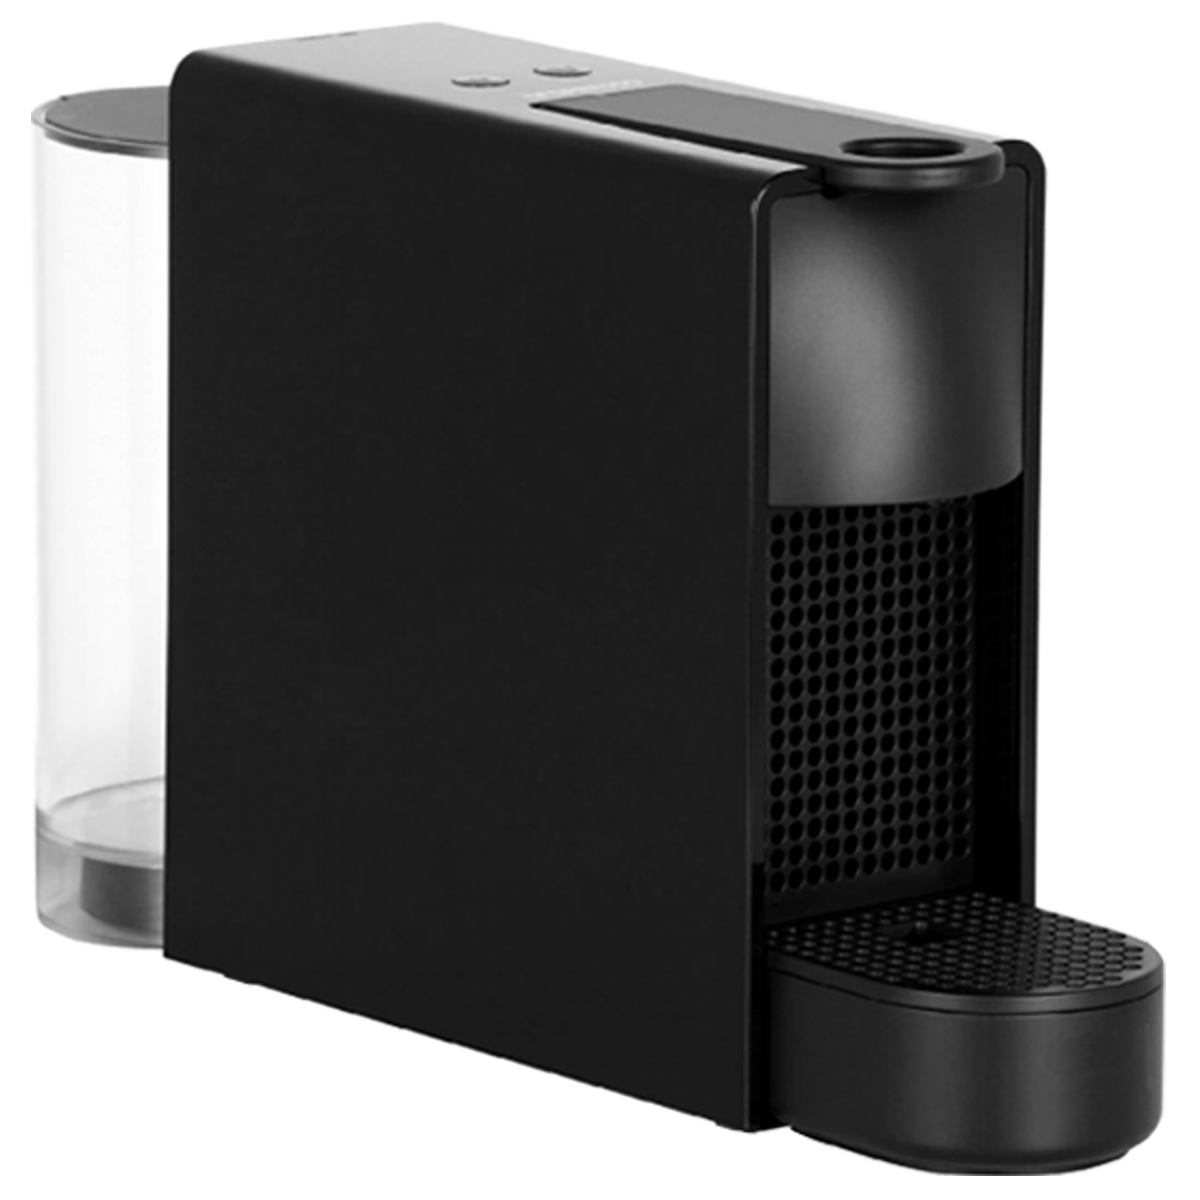 Nespresso®* Essenza Coffee Machine - Black